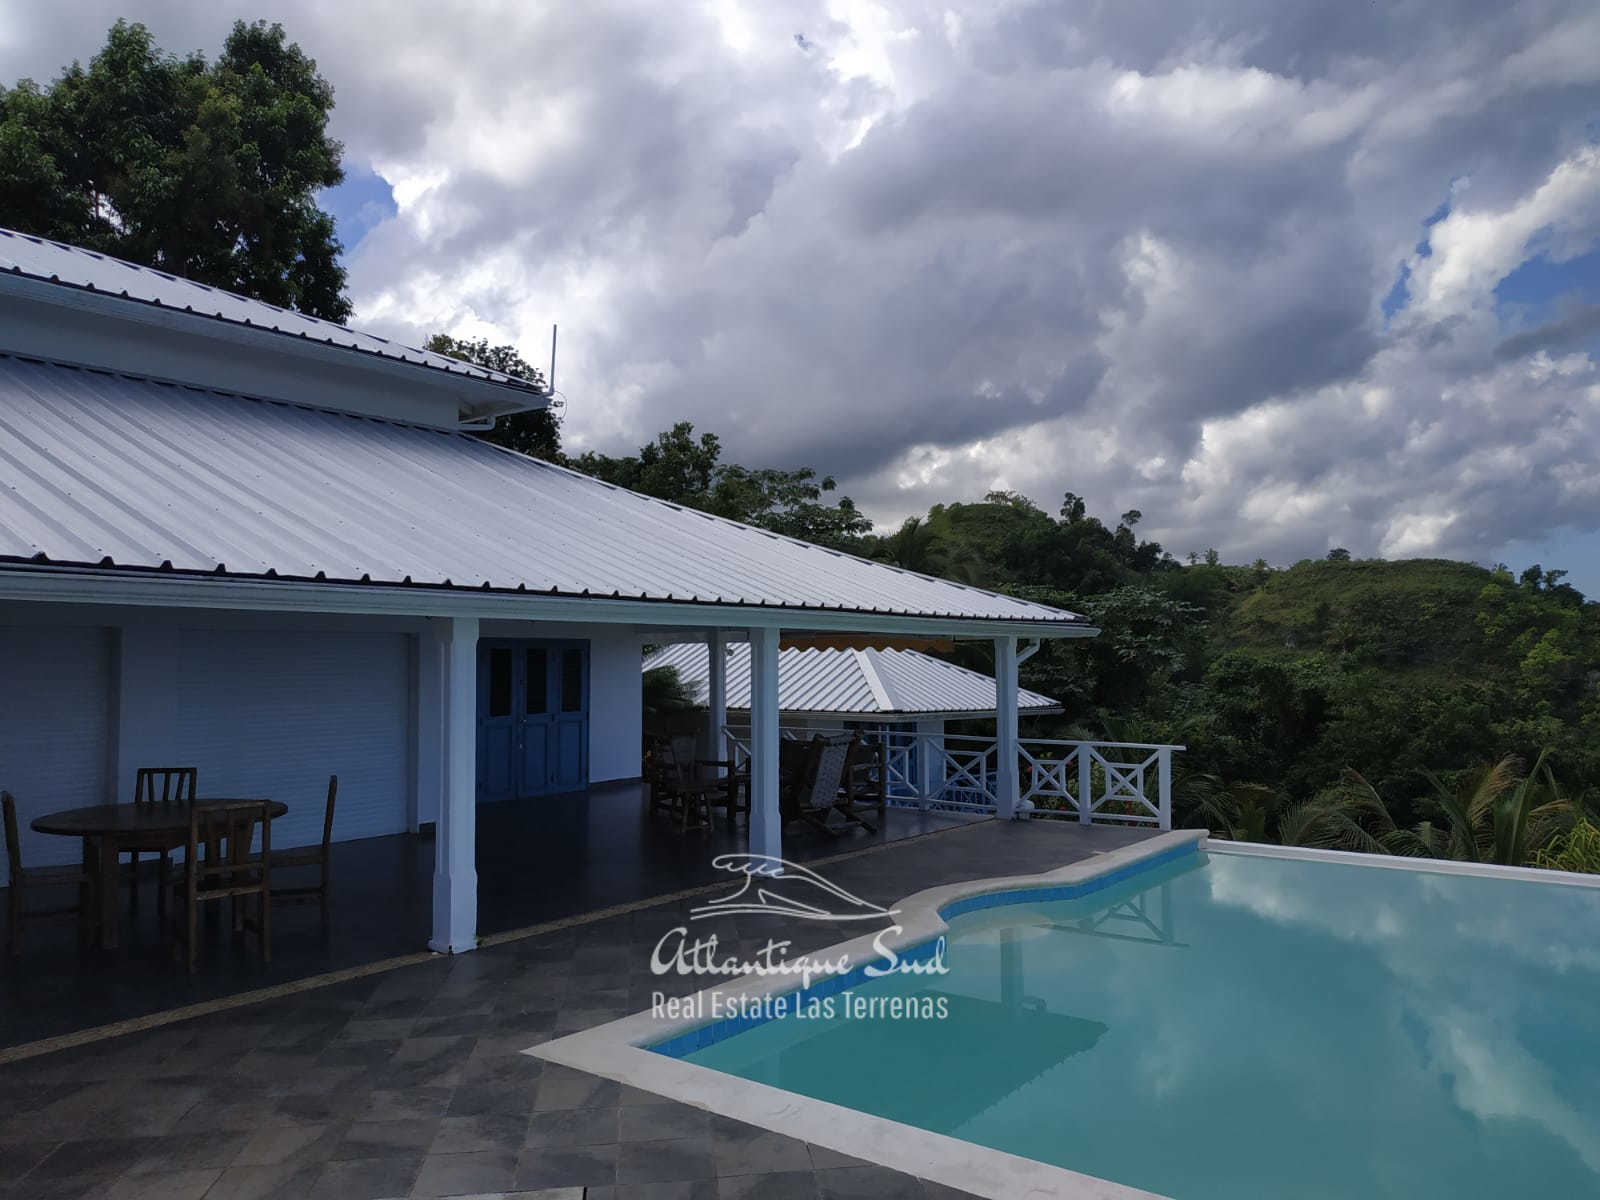 Hillside house for sale in Las terrenas17.jpg